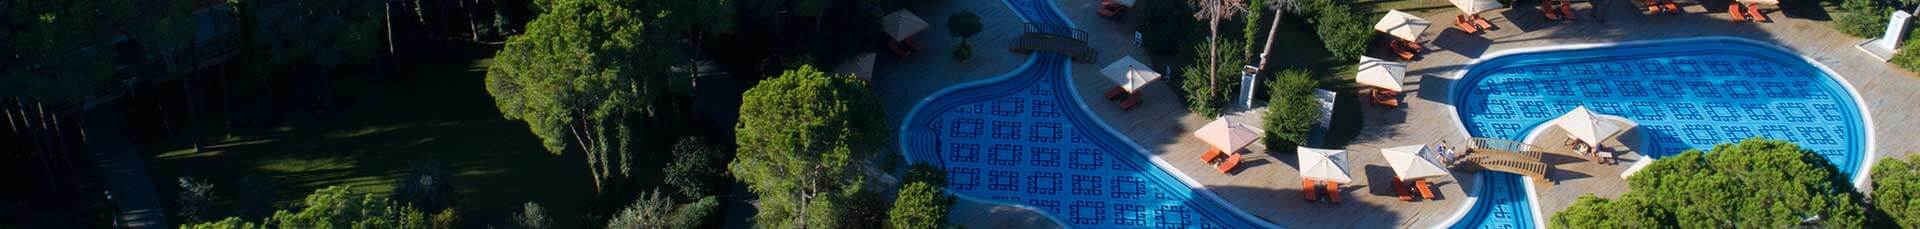 Ali Bey Resort Sorgun - Pools